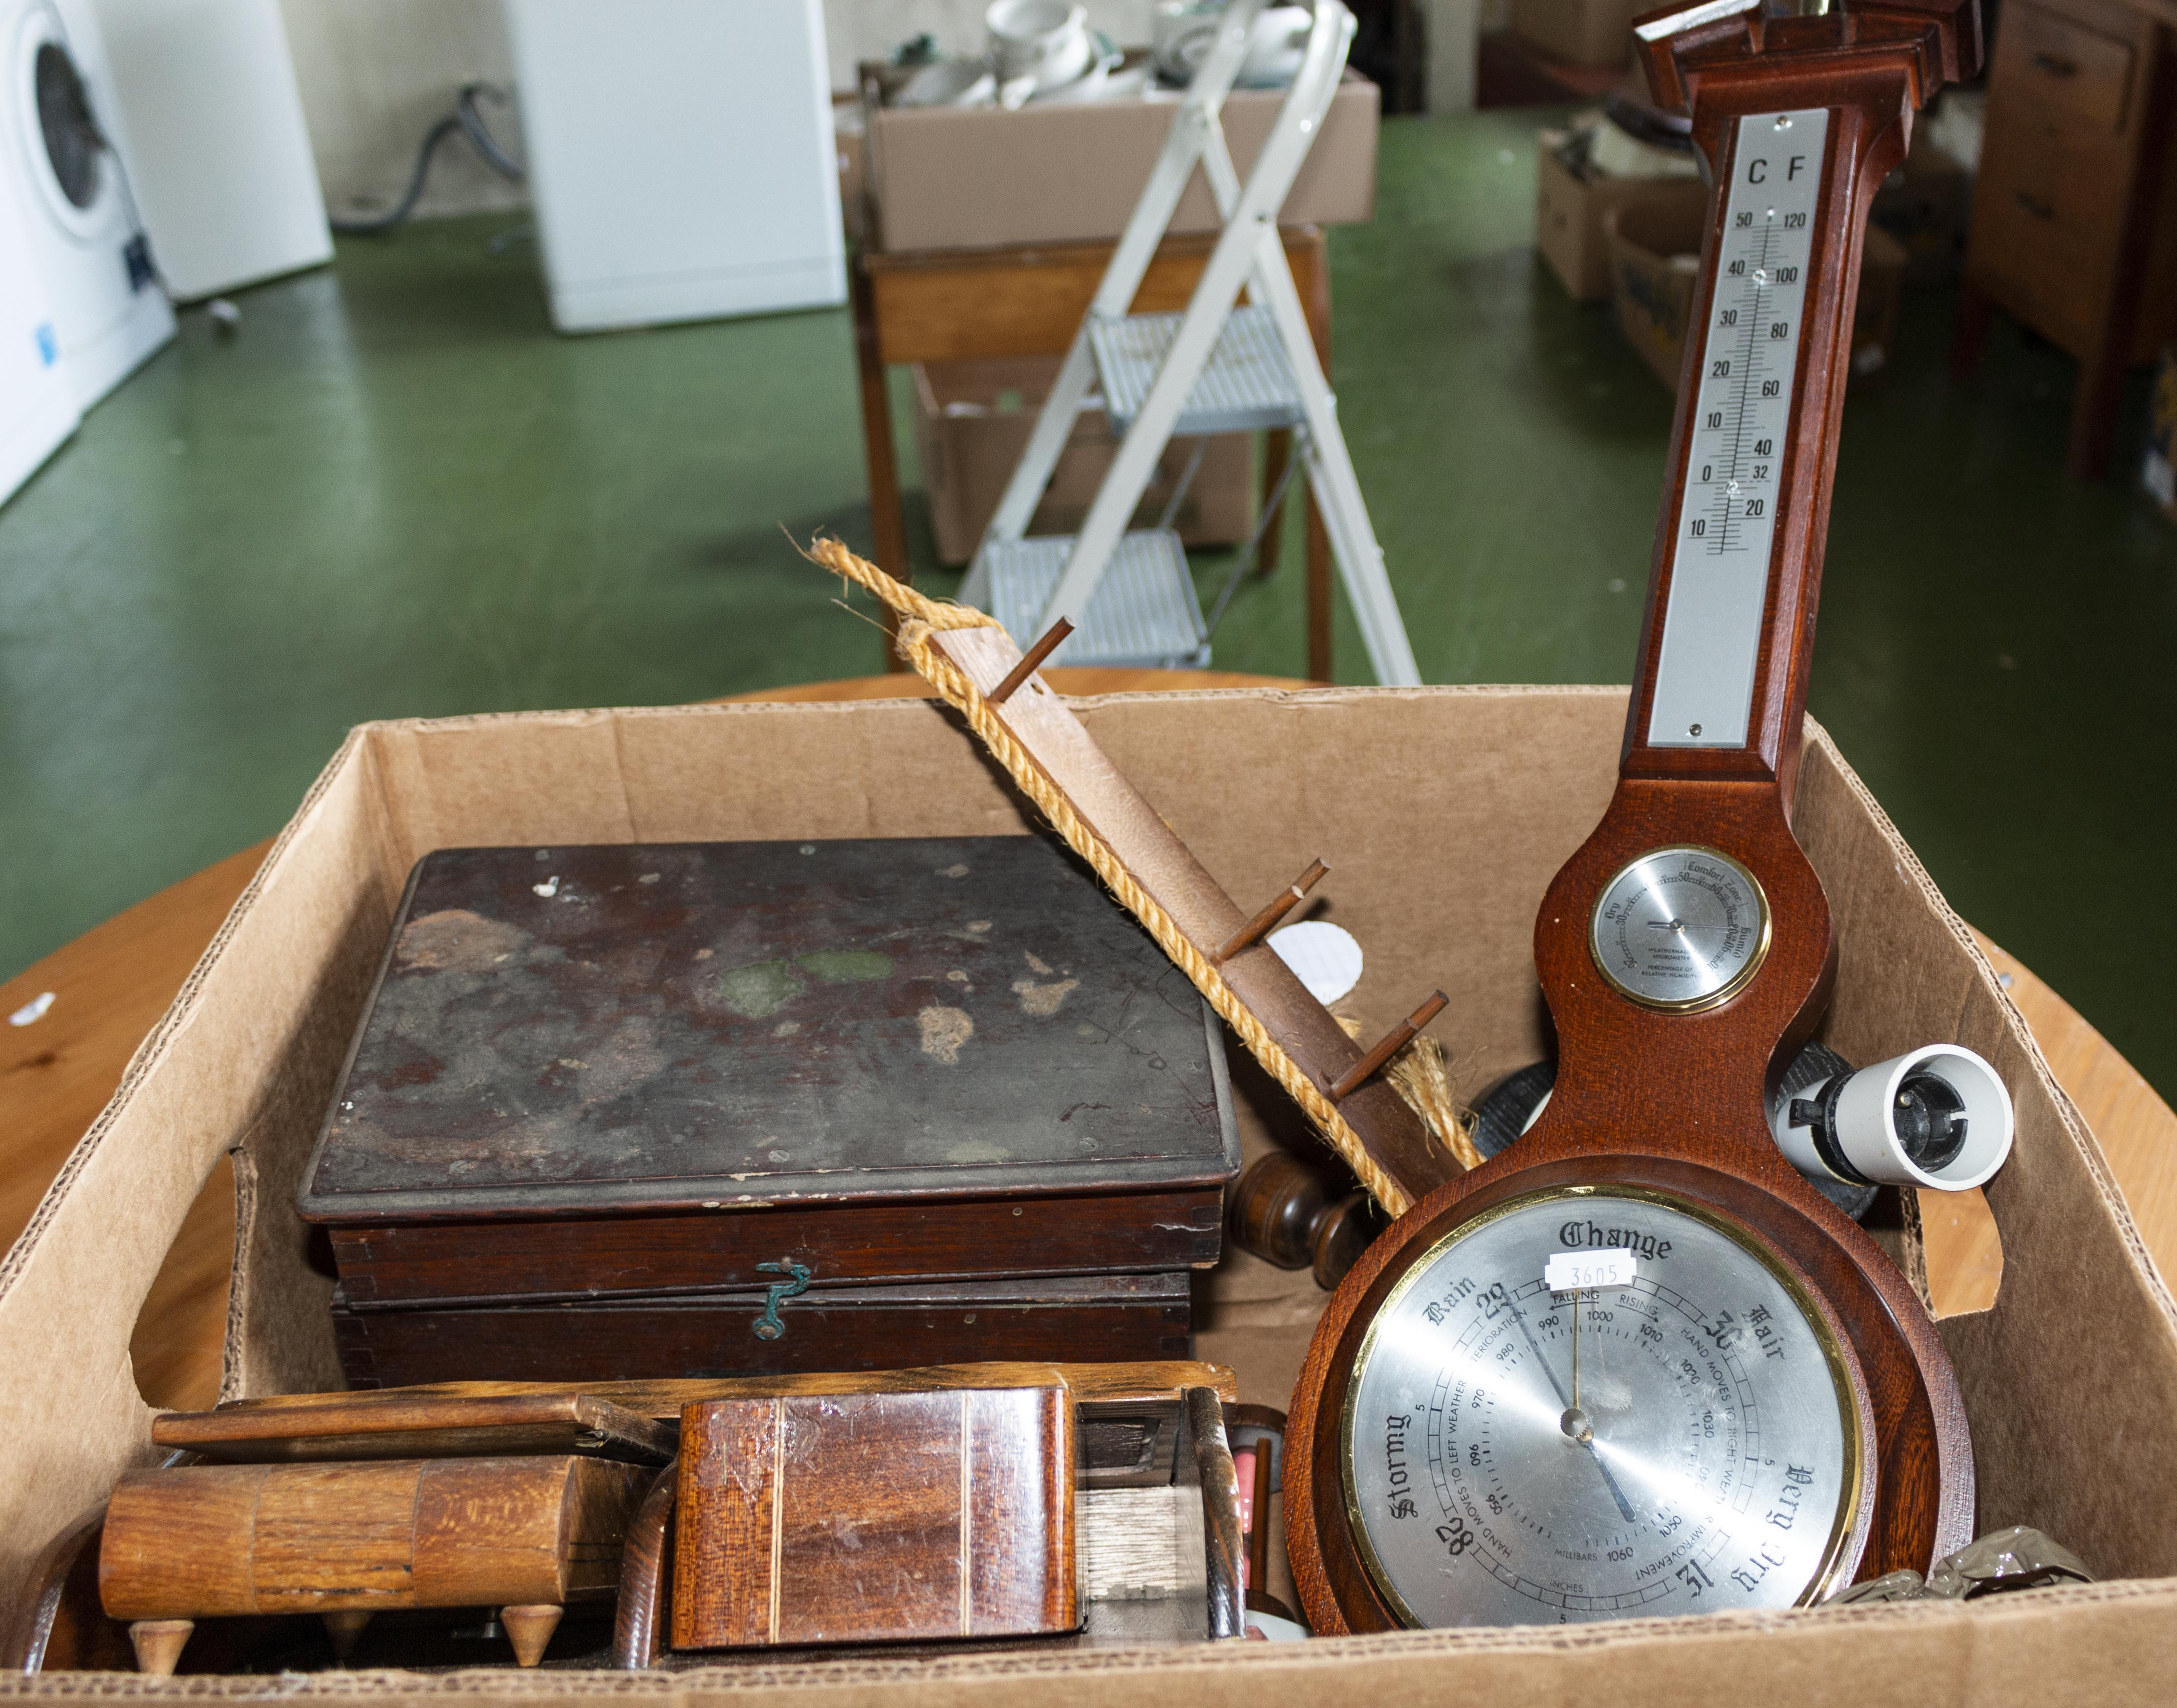 Lot 46 - A box containing wooden items and a barometer